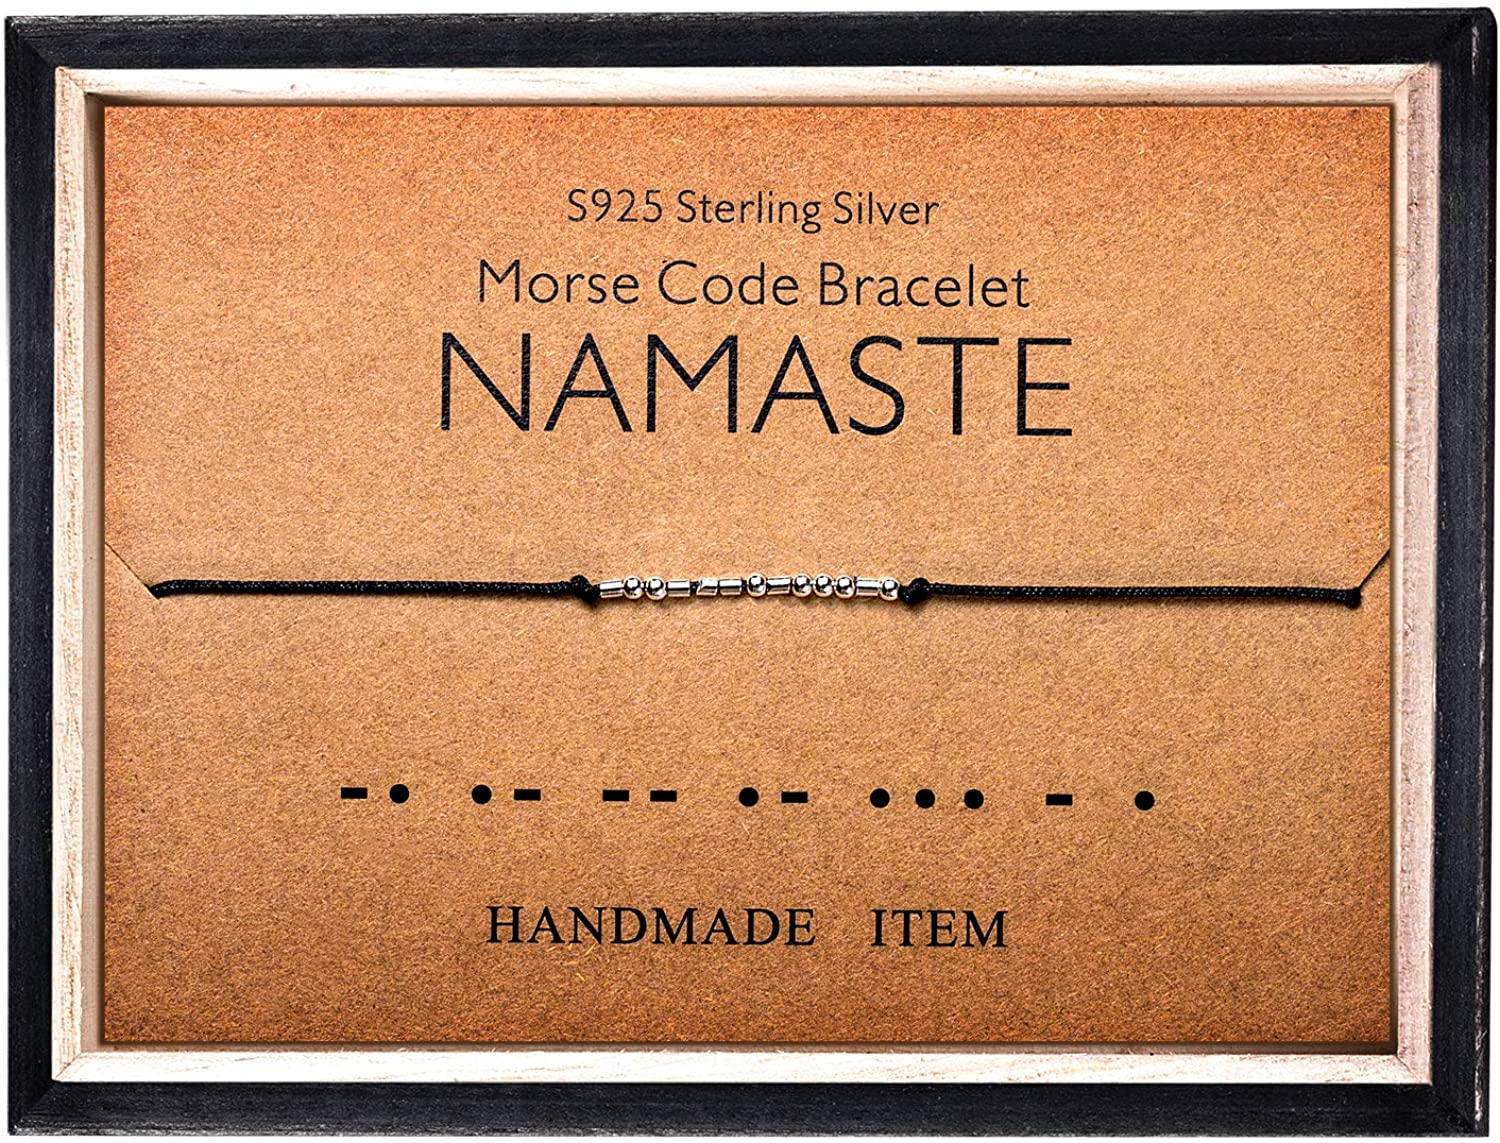 Morse Code Bracelet 925 Sterling Silver Beads on Silk Cord Secret Message NAMASTE bracelet Gift Jewelry for her